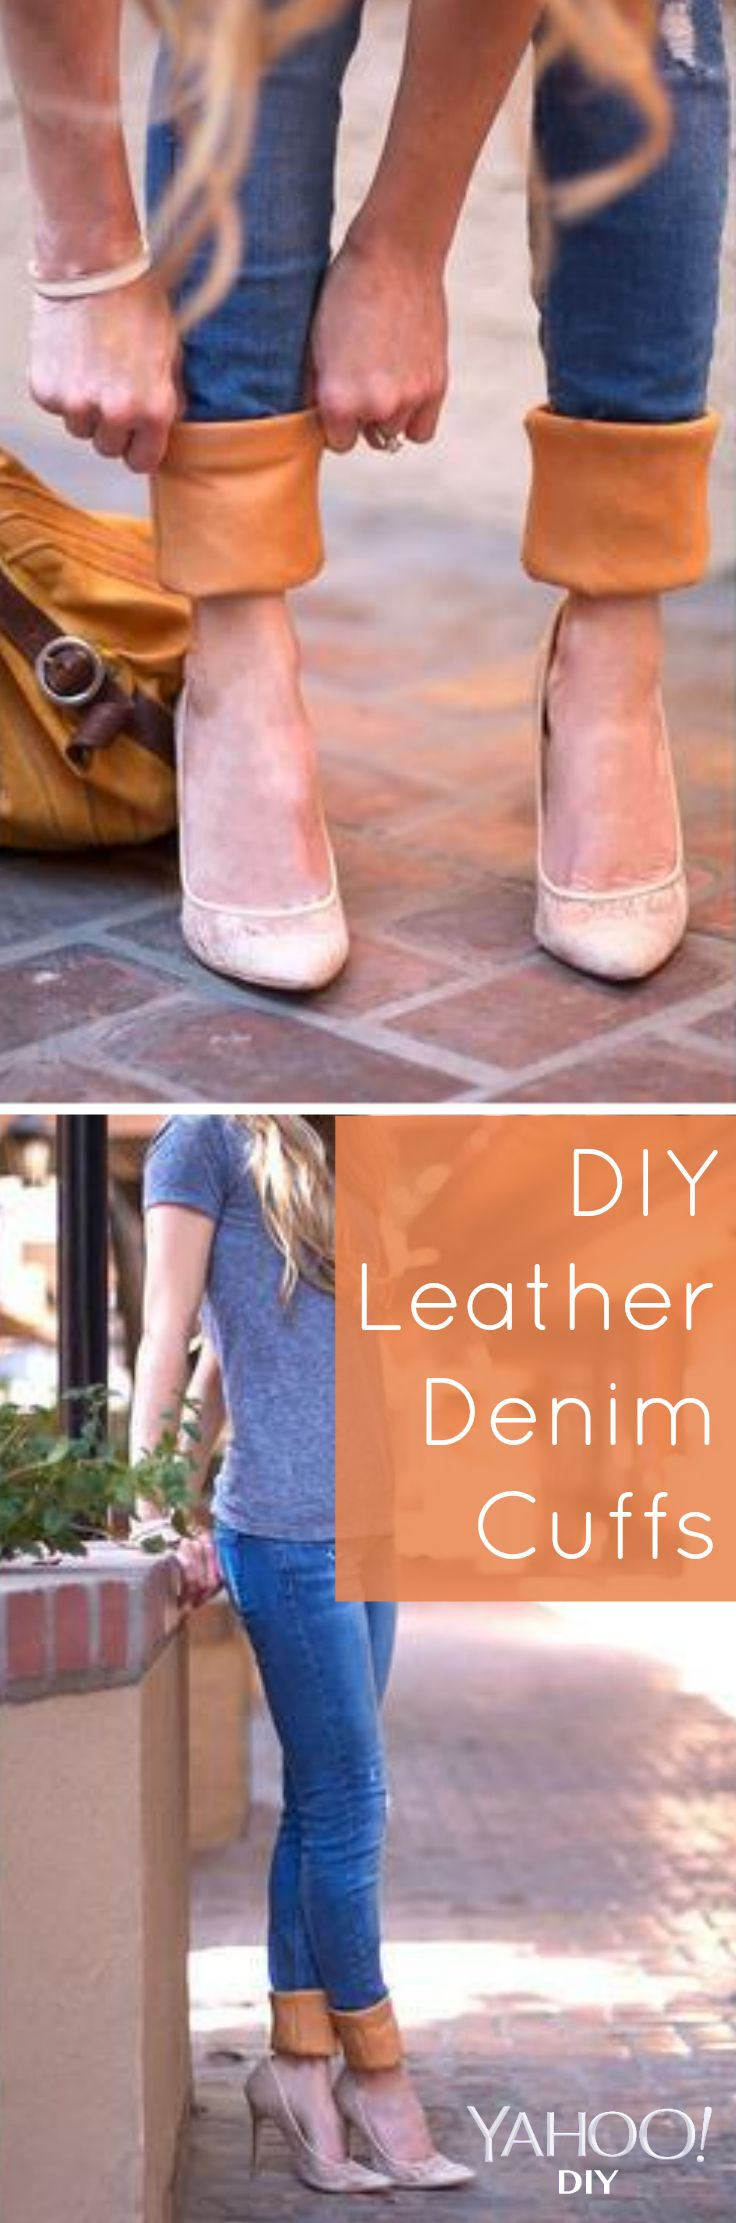 DIY Leather Denim Cuffs - Love this tutorial